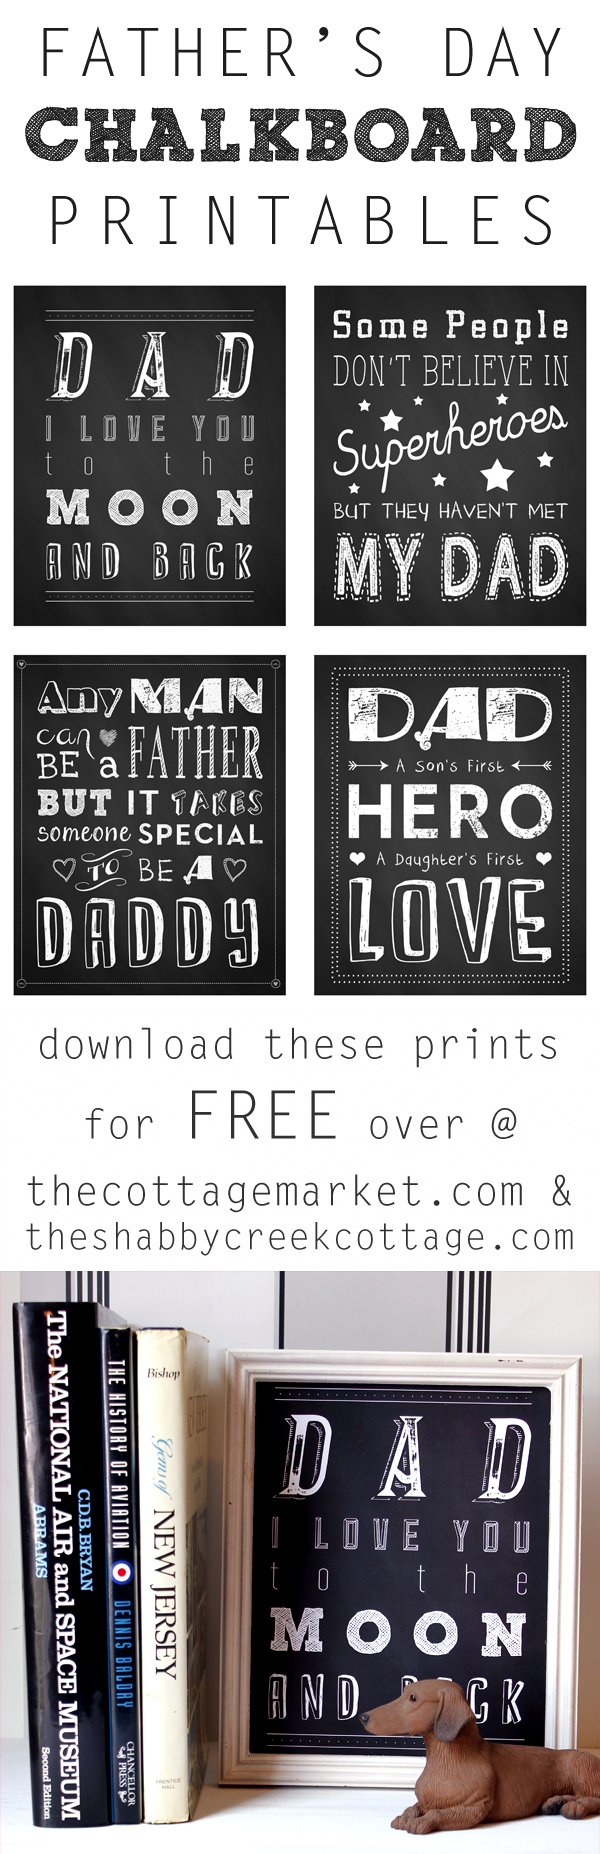 FathersDay-Printable-Tower